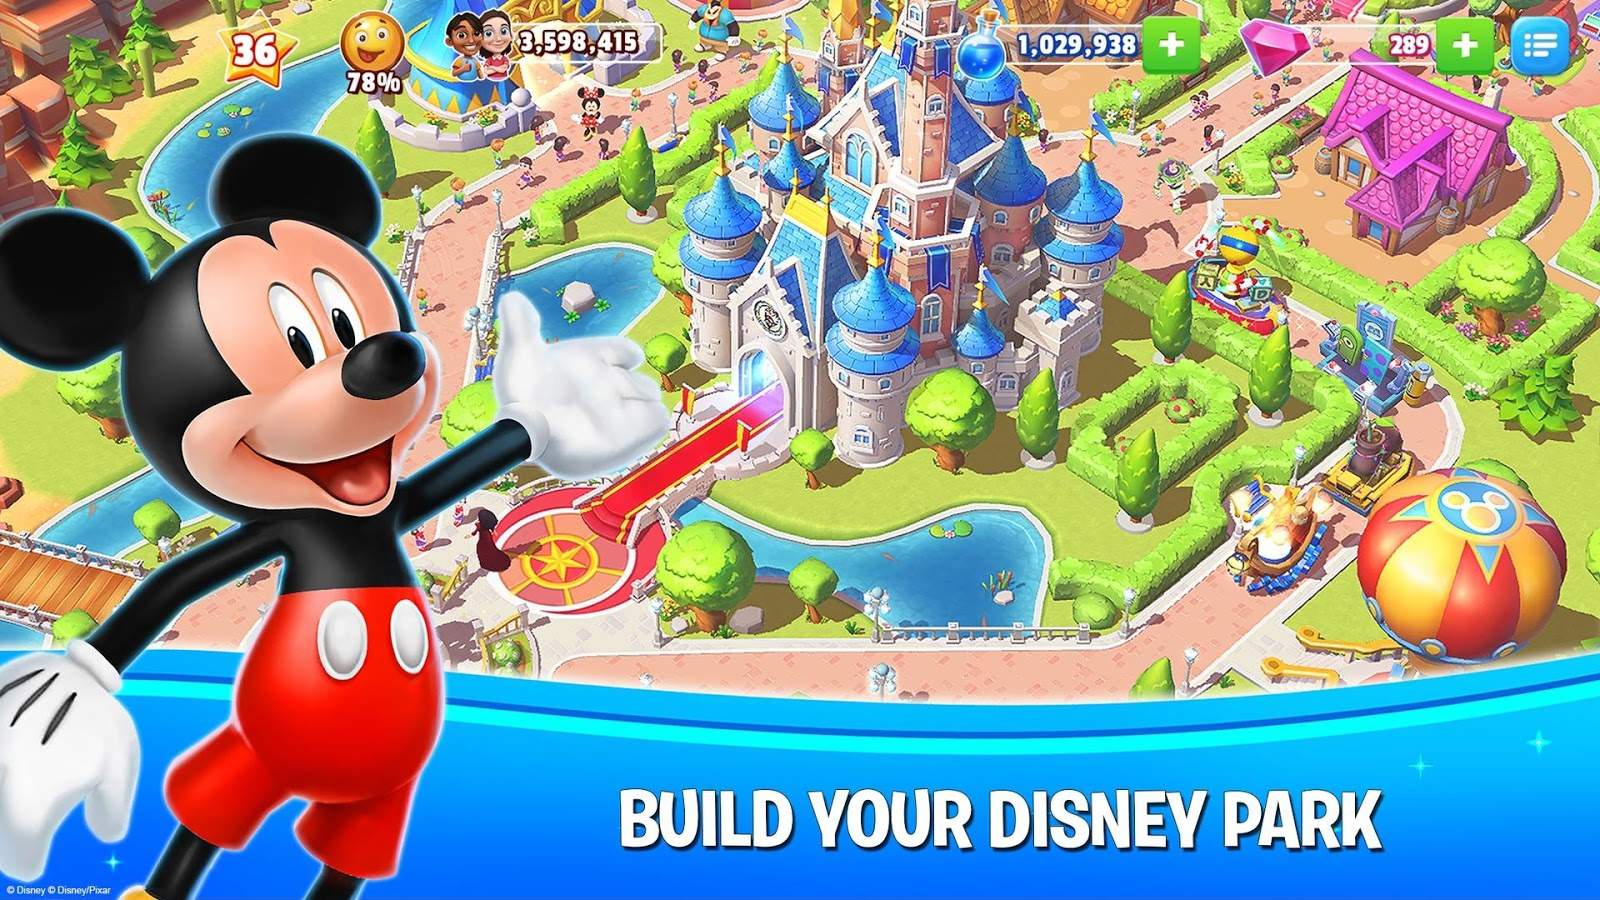 My Home Design Cheats Disney Magic Kingdoms Build Your Own Magical Park